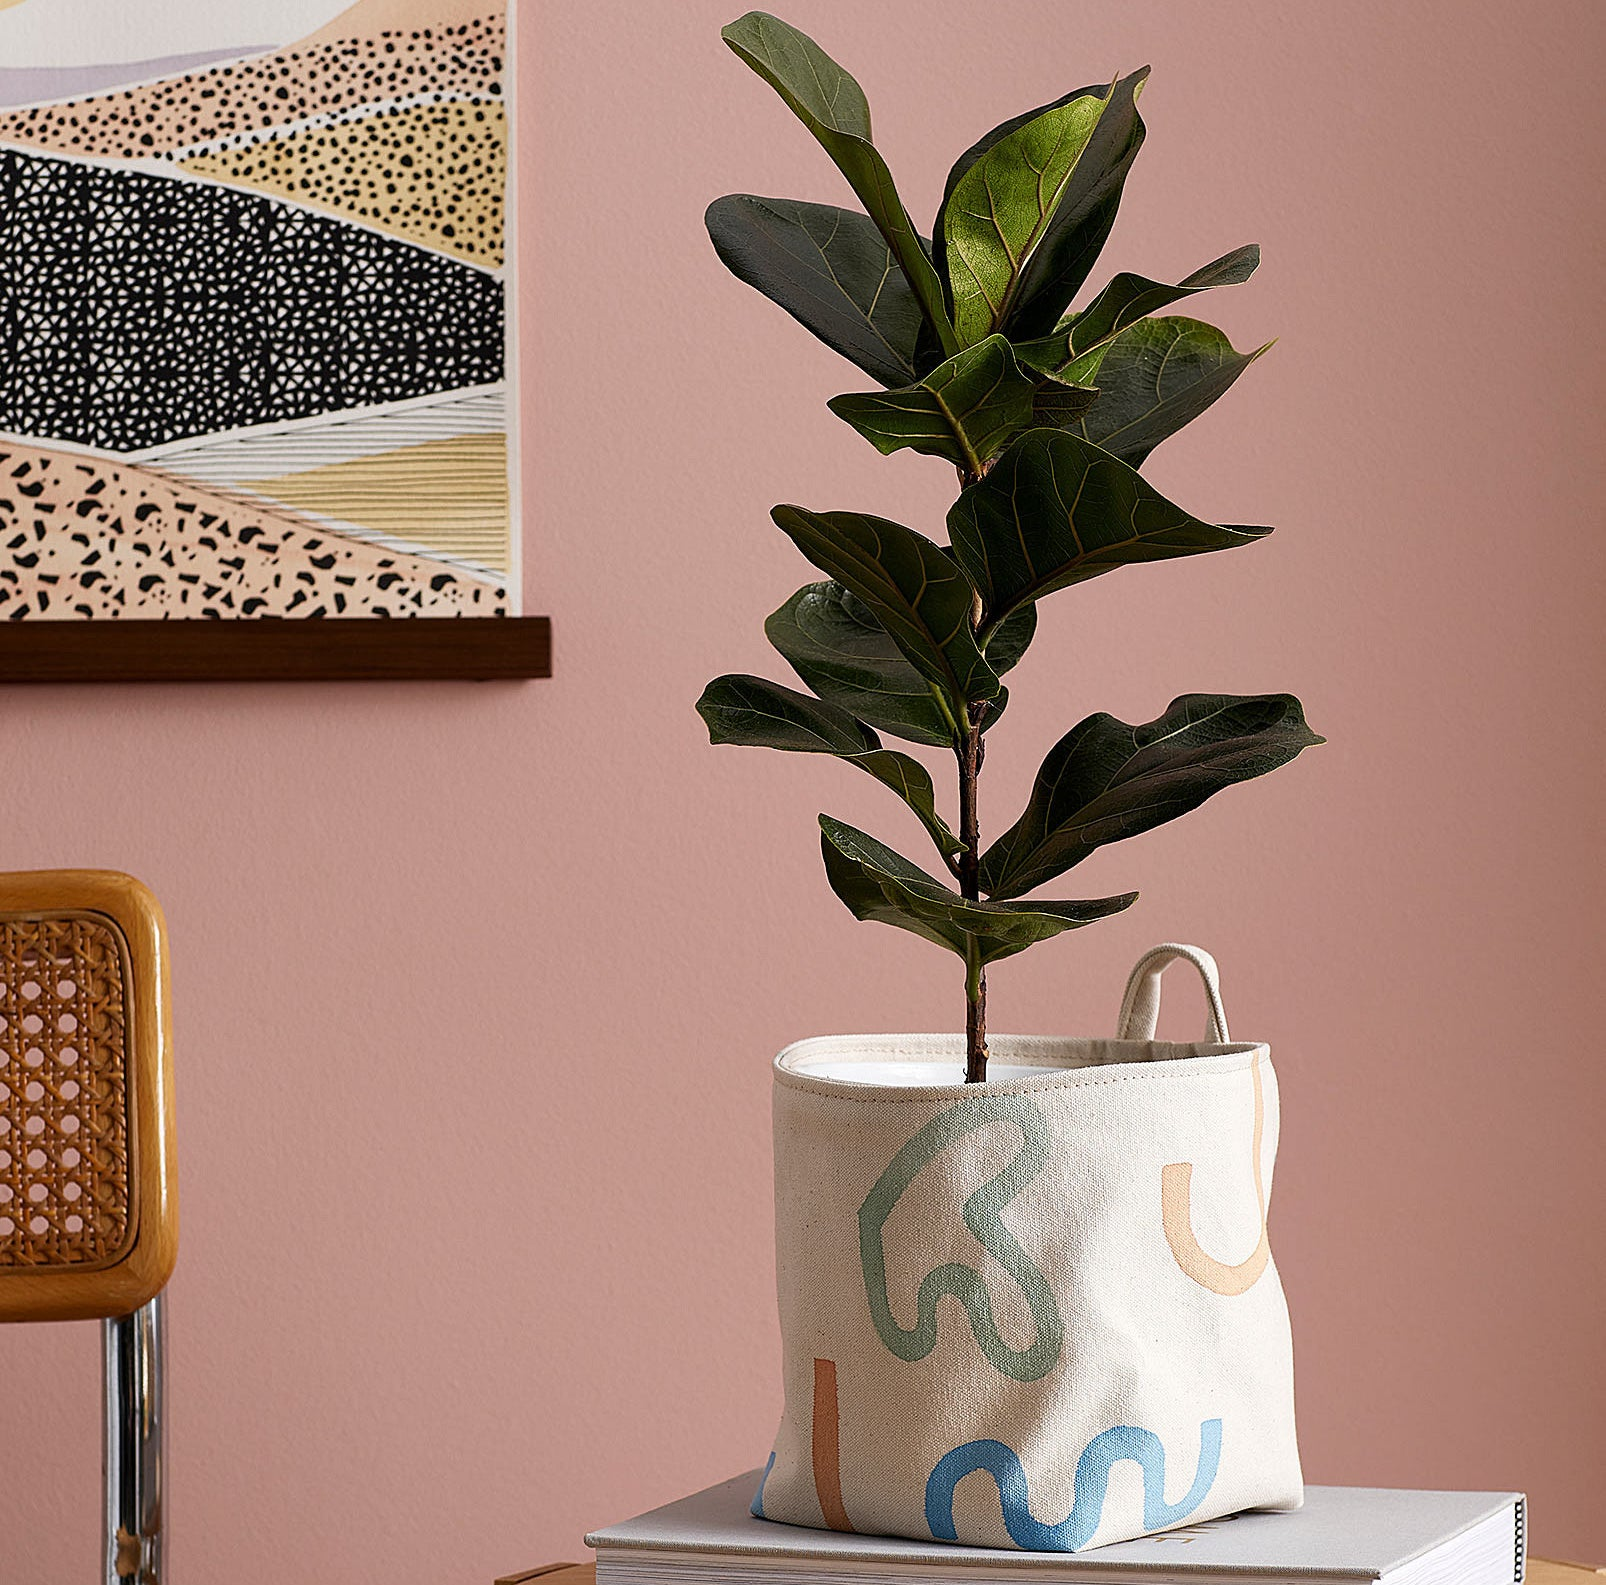 A large ficus plant in a fabric plant pot